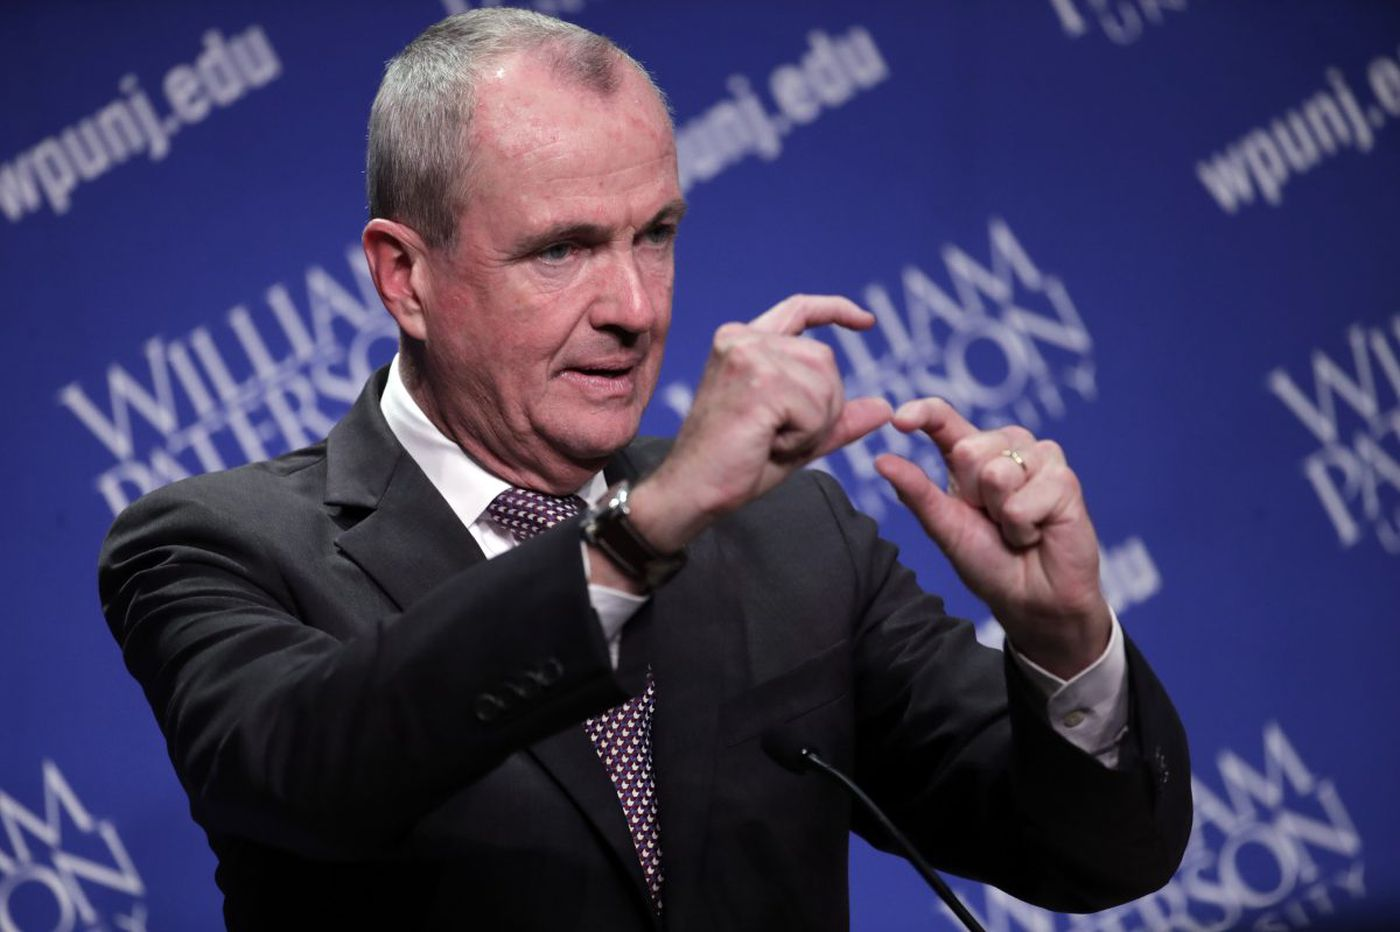 'Classic Goldman archetype': Democrat Phil Murphy spent career on Wall Street, wants to be liberal N.J. governor